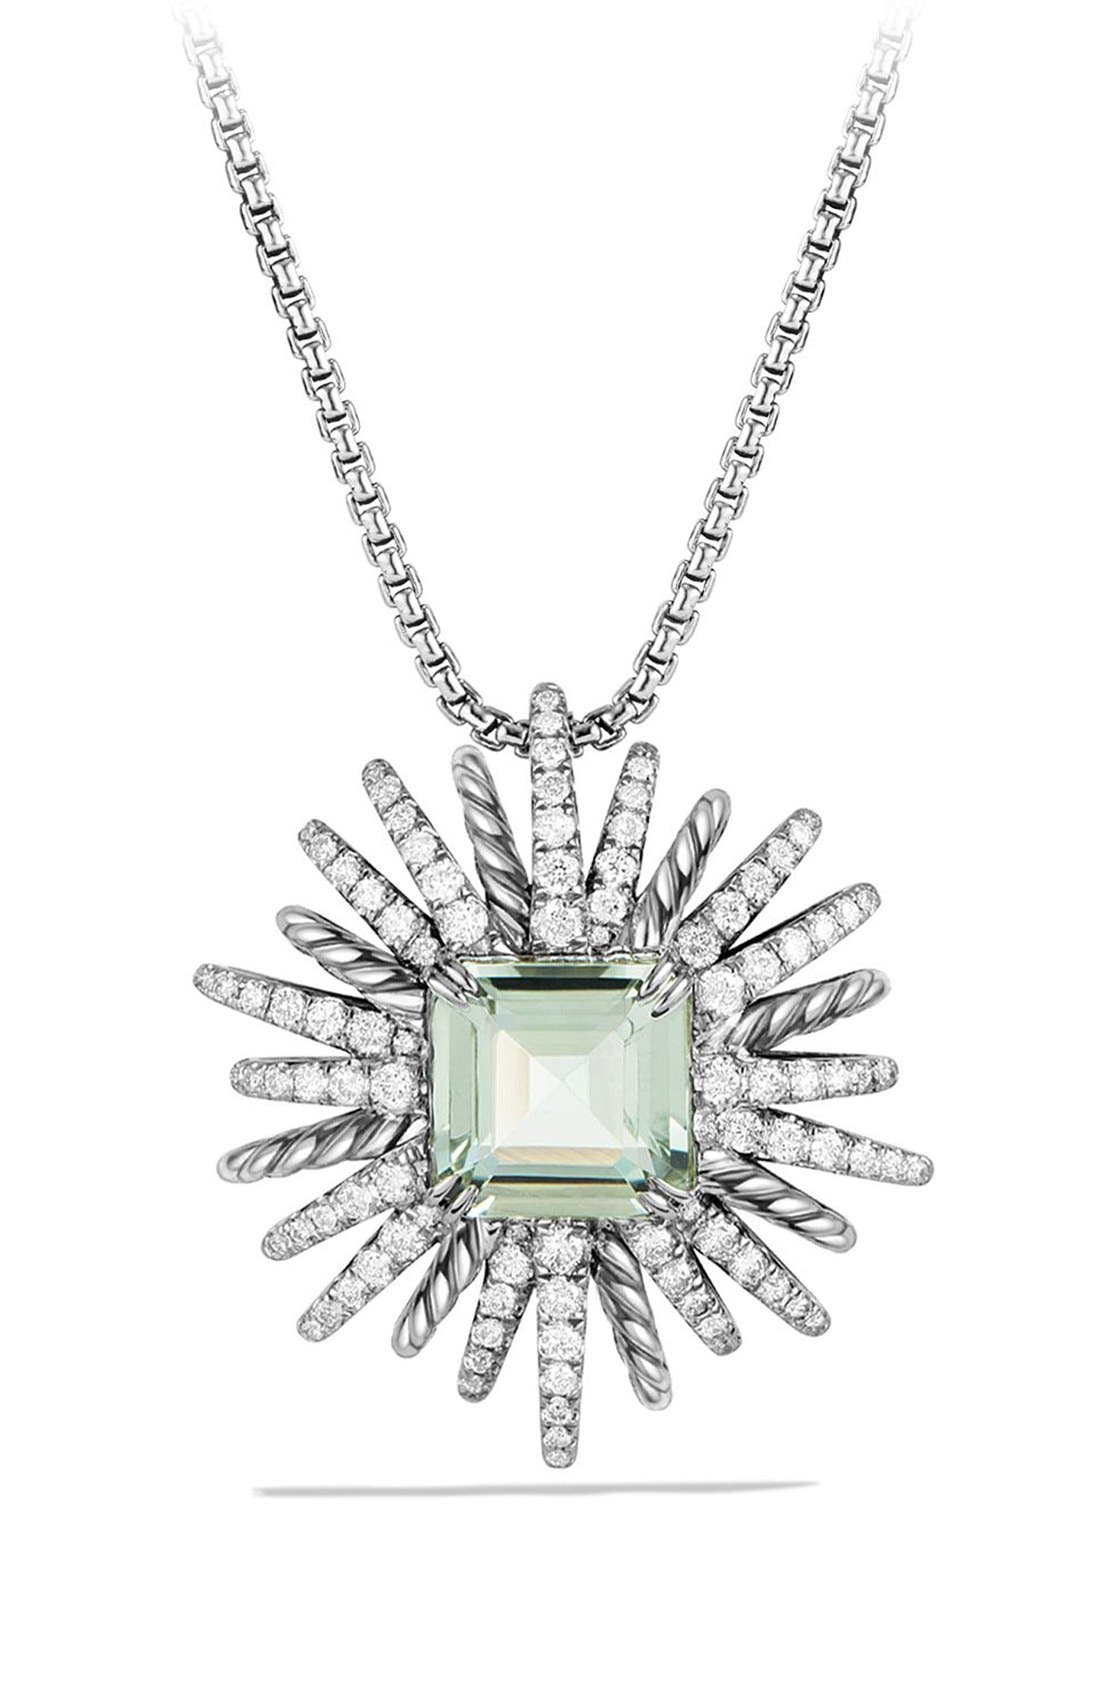 'Starburst' Necklace with Diamonds in Silver,                             Main thumbnail 1, color,                             Prasiolite